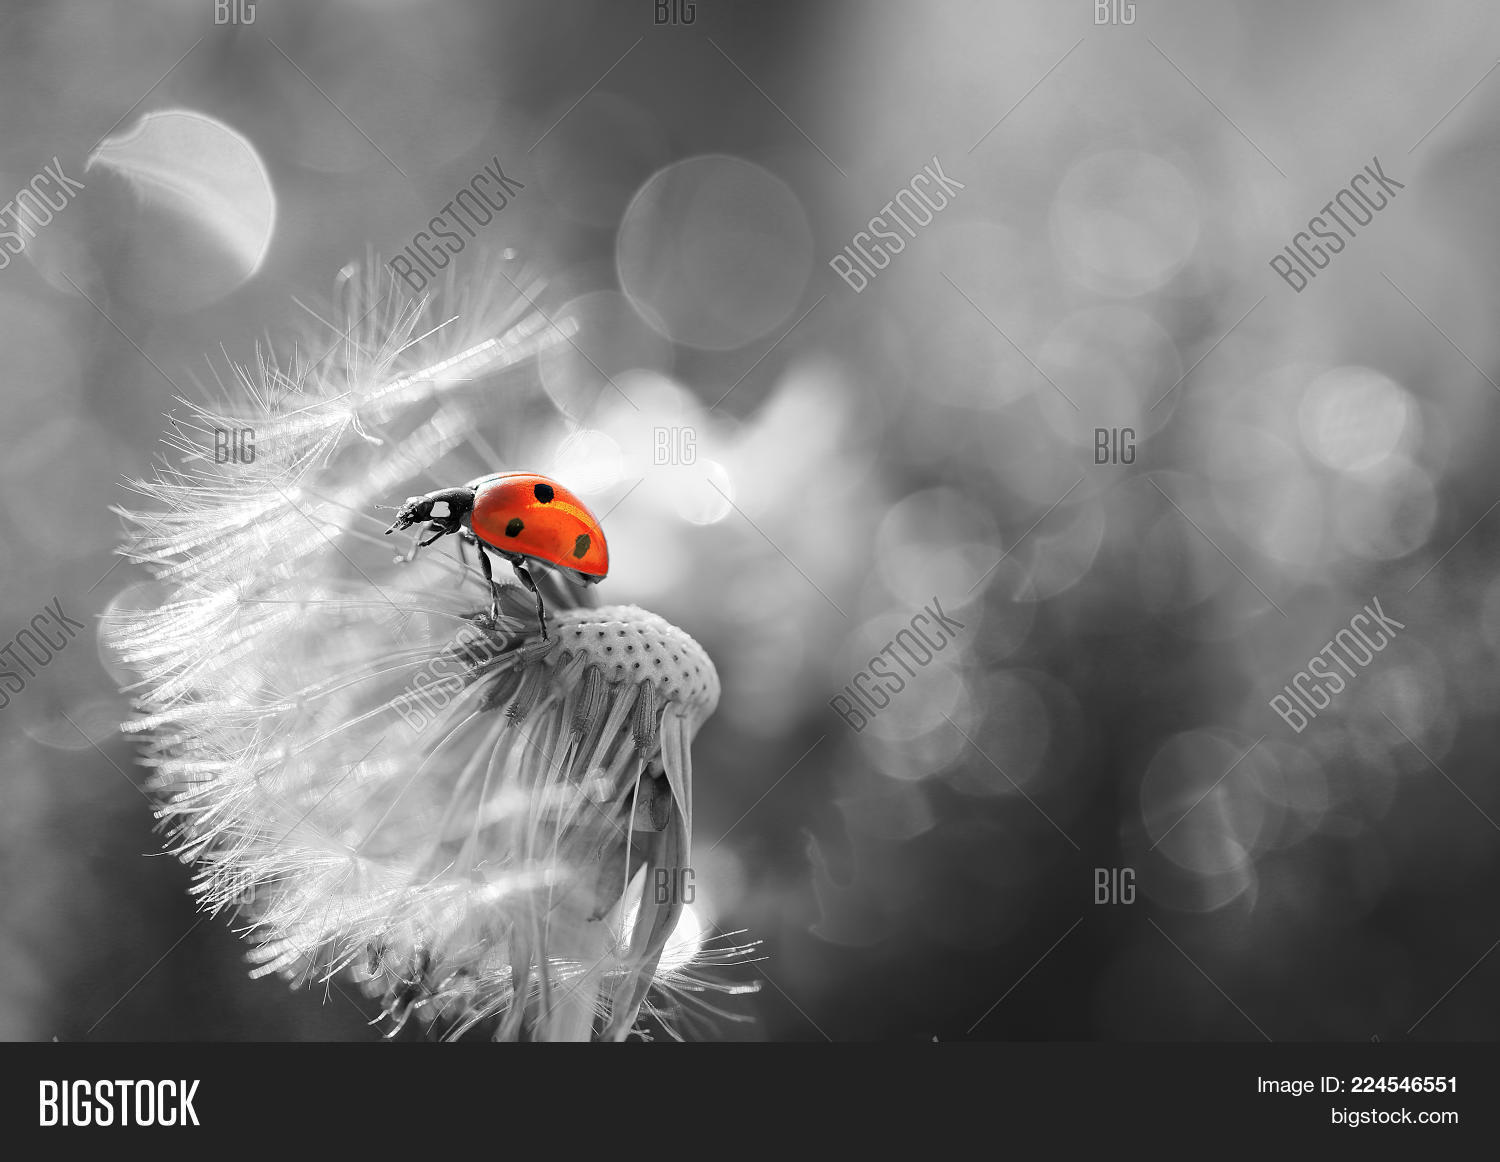 Small red ladybug PowerPoint Template - Small red ladybug PowerPoint ...